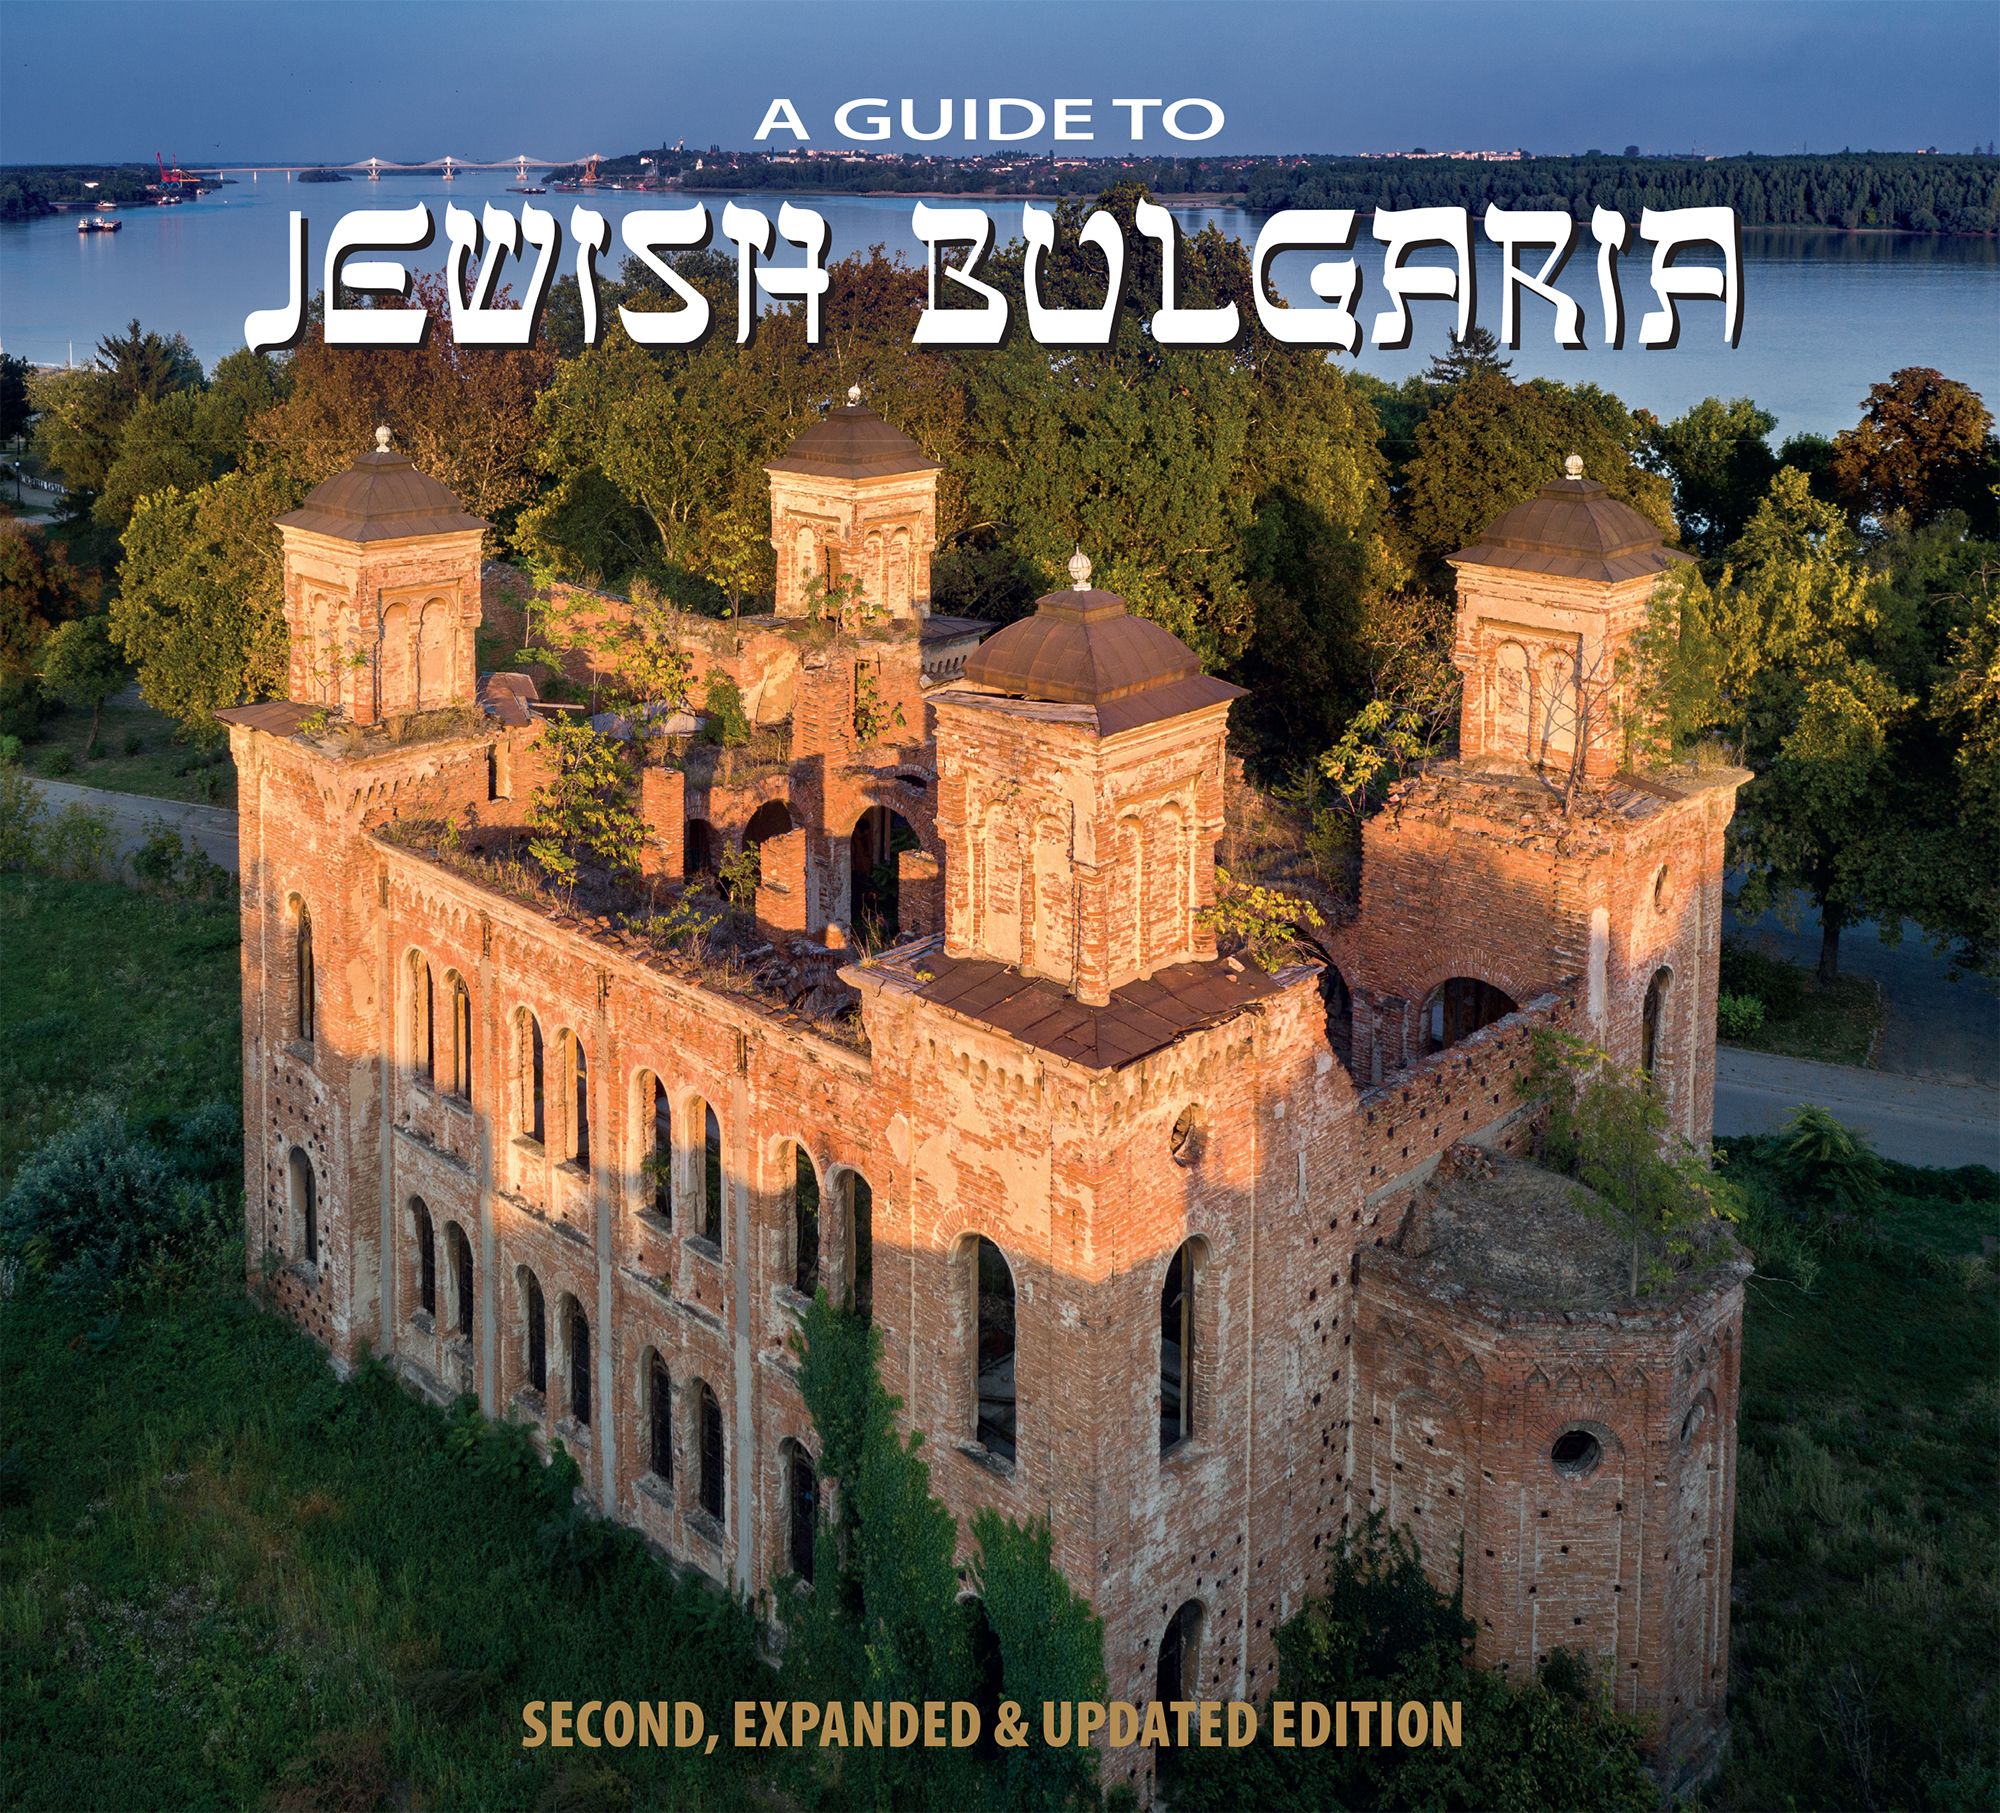 A Guide to Jewish Bulgaria_0.jpg